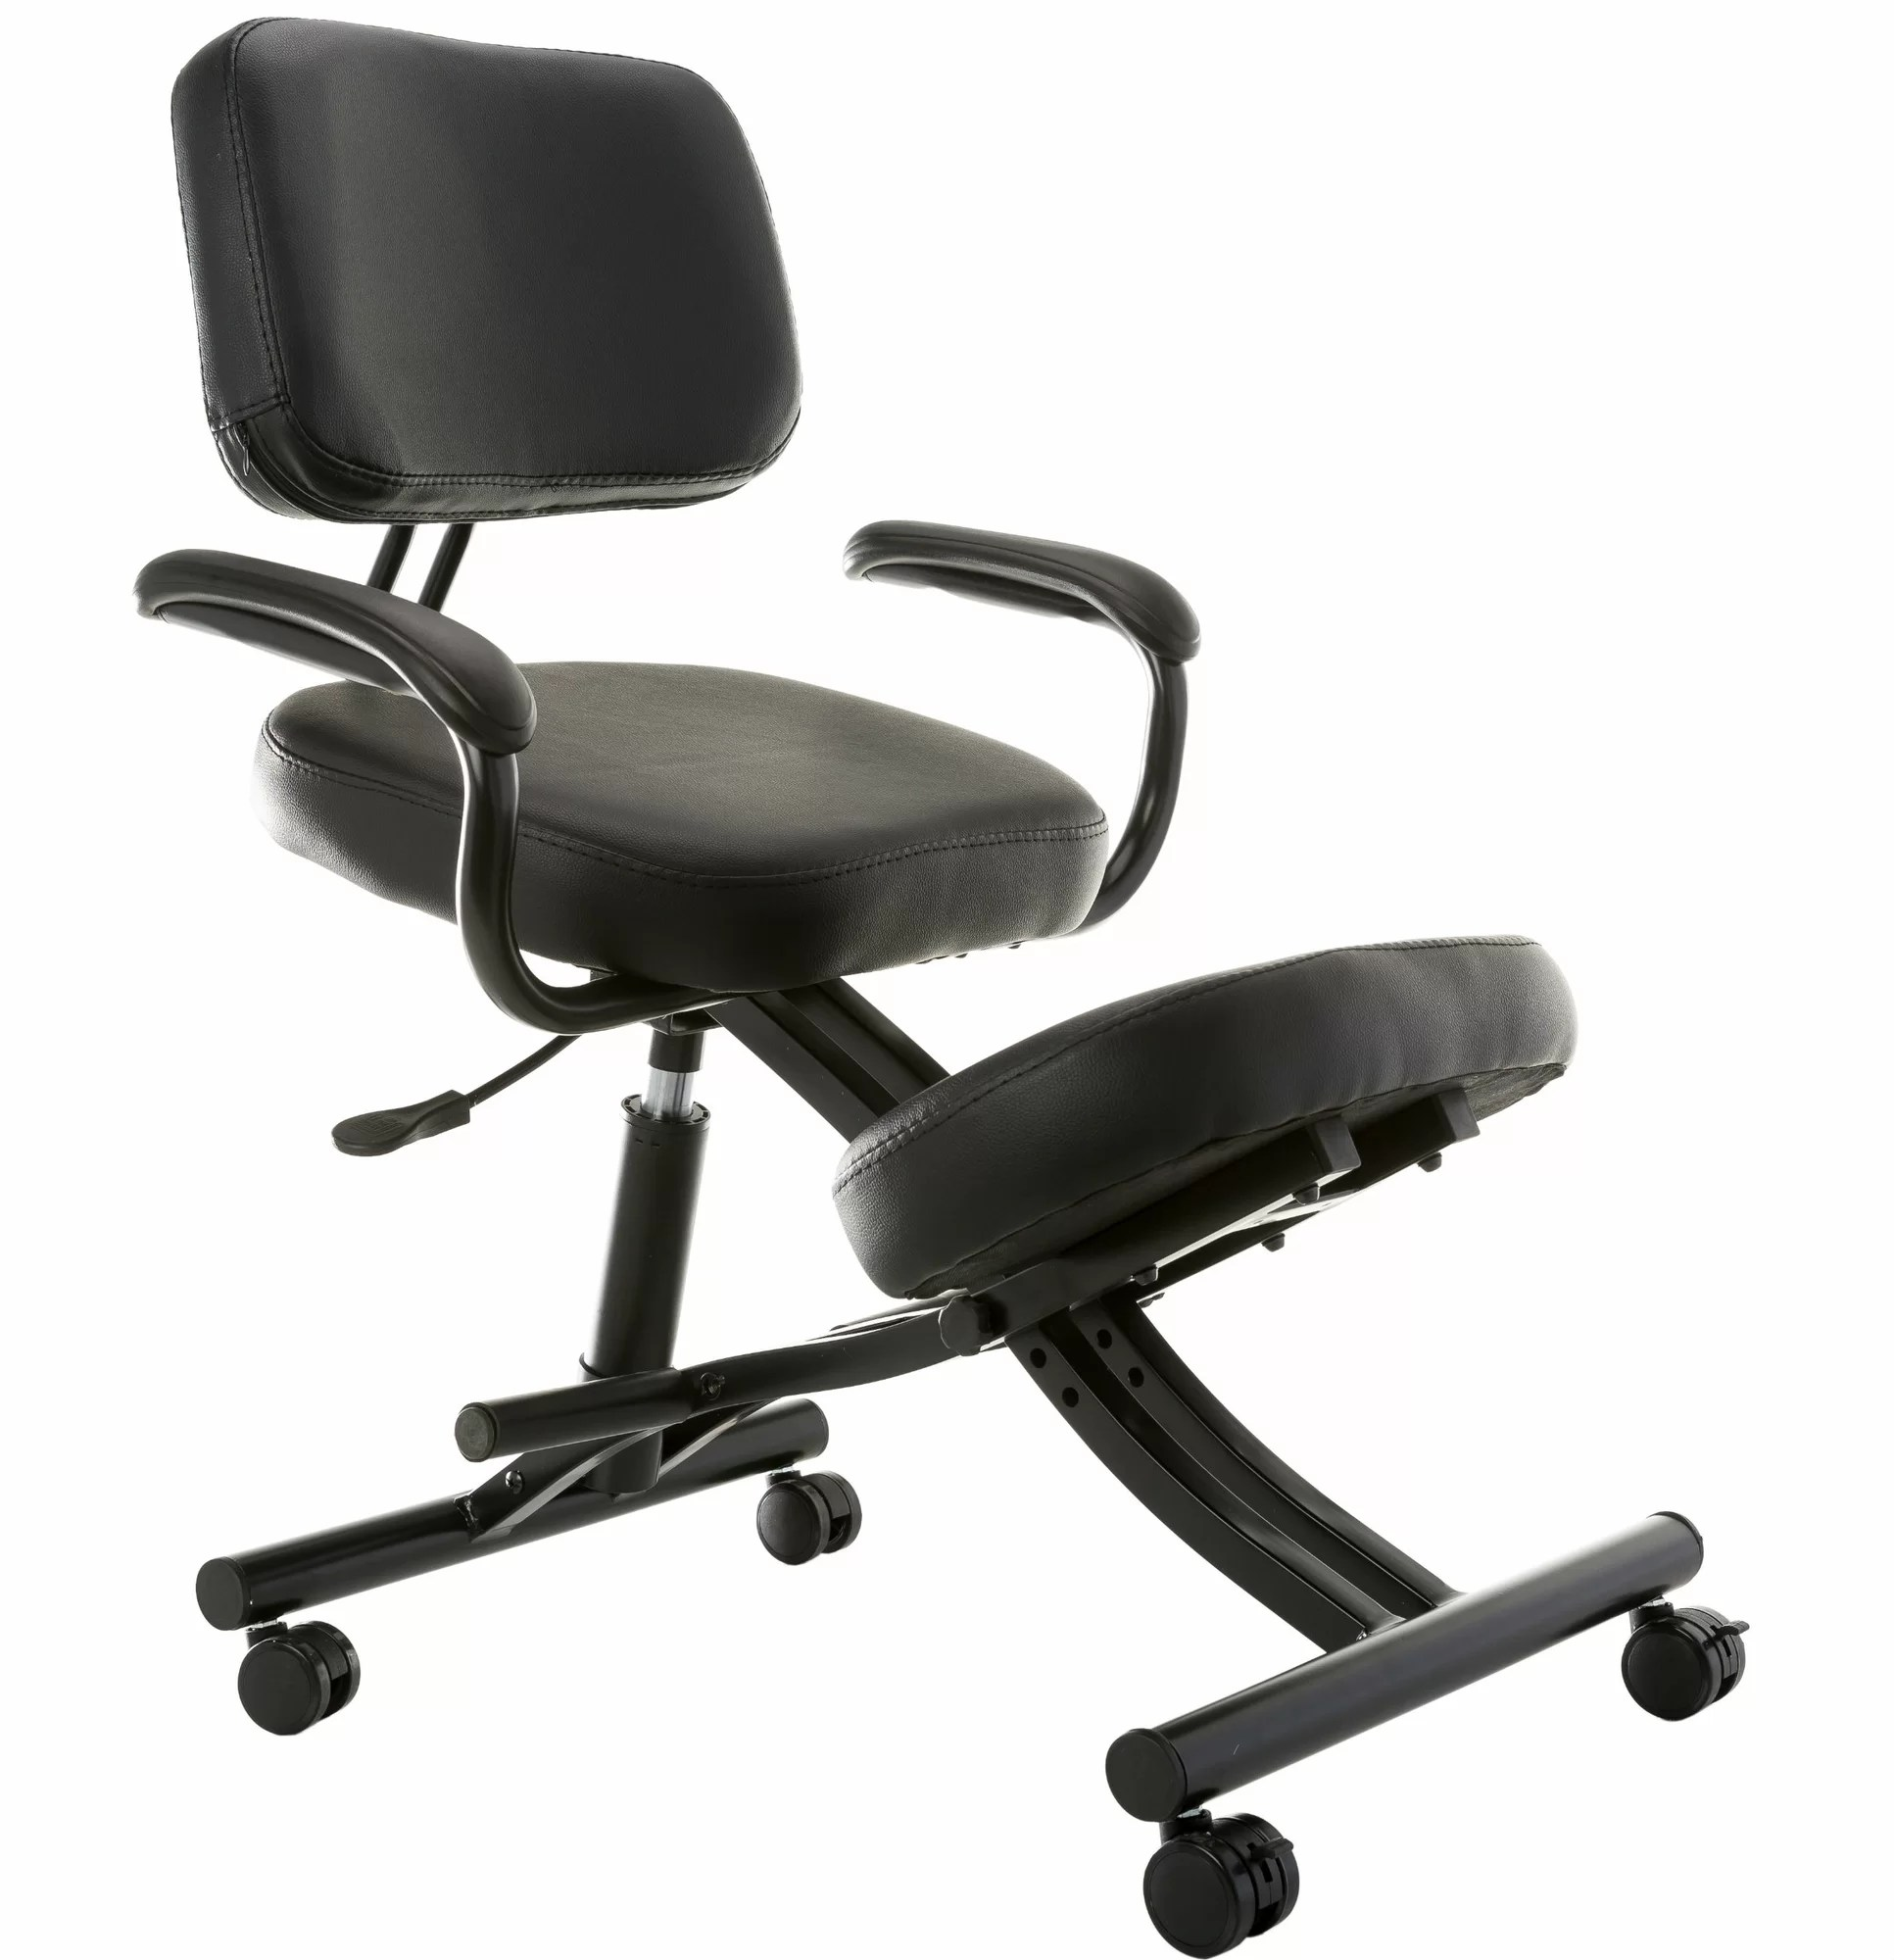 Ergonomic Chair Kneeling Sierra Comfort Ergonomic Low Back Kneeling Chair